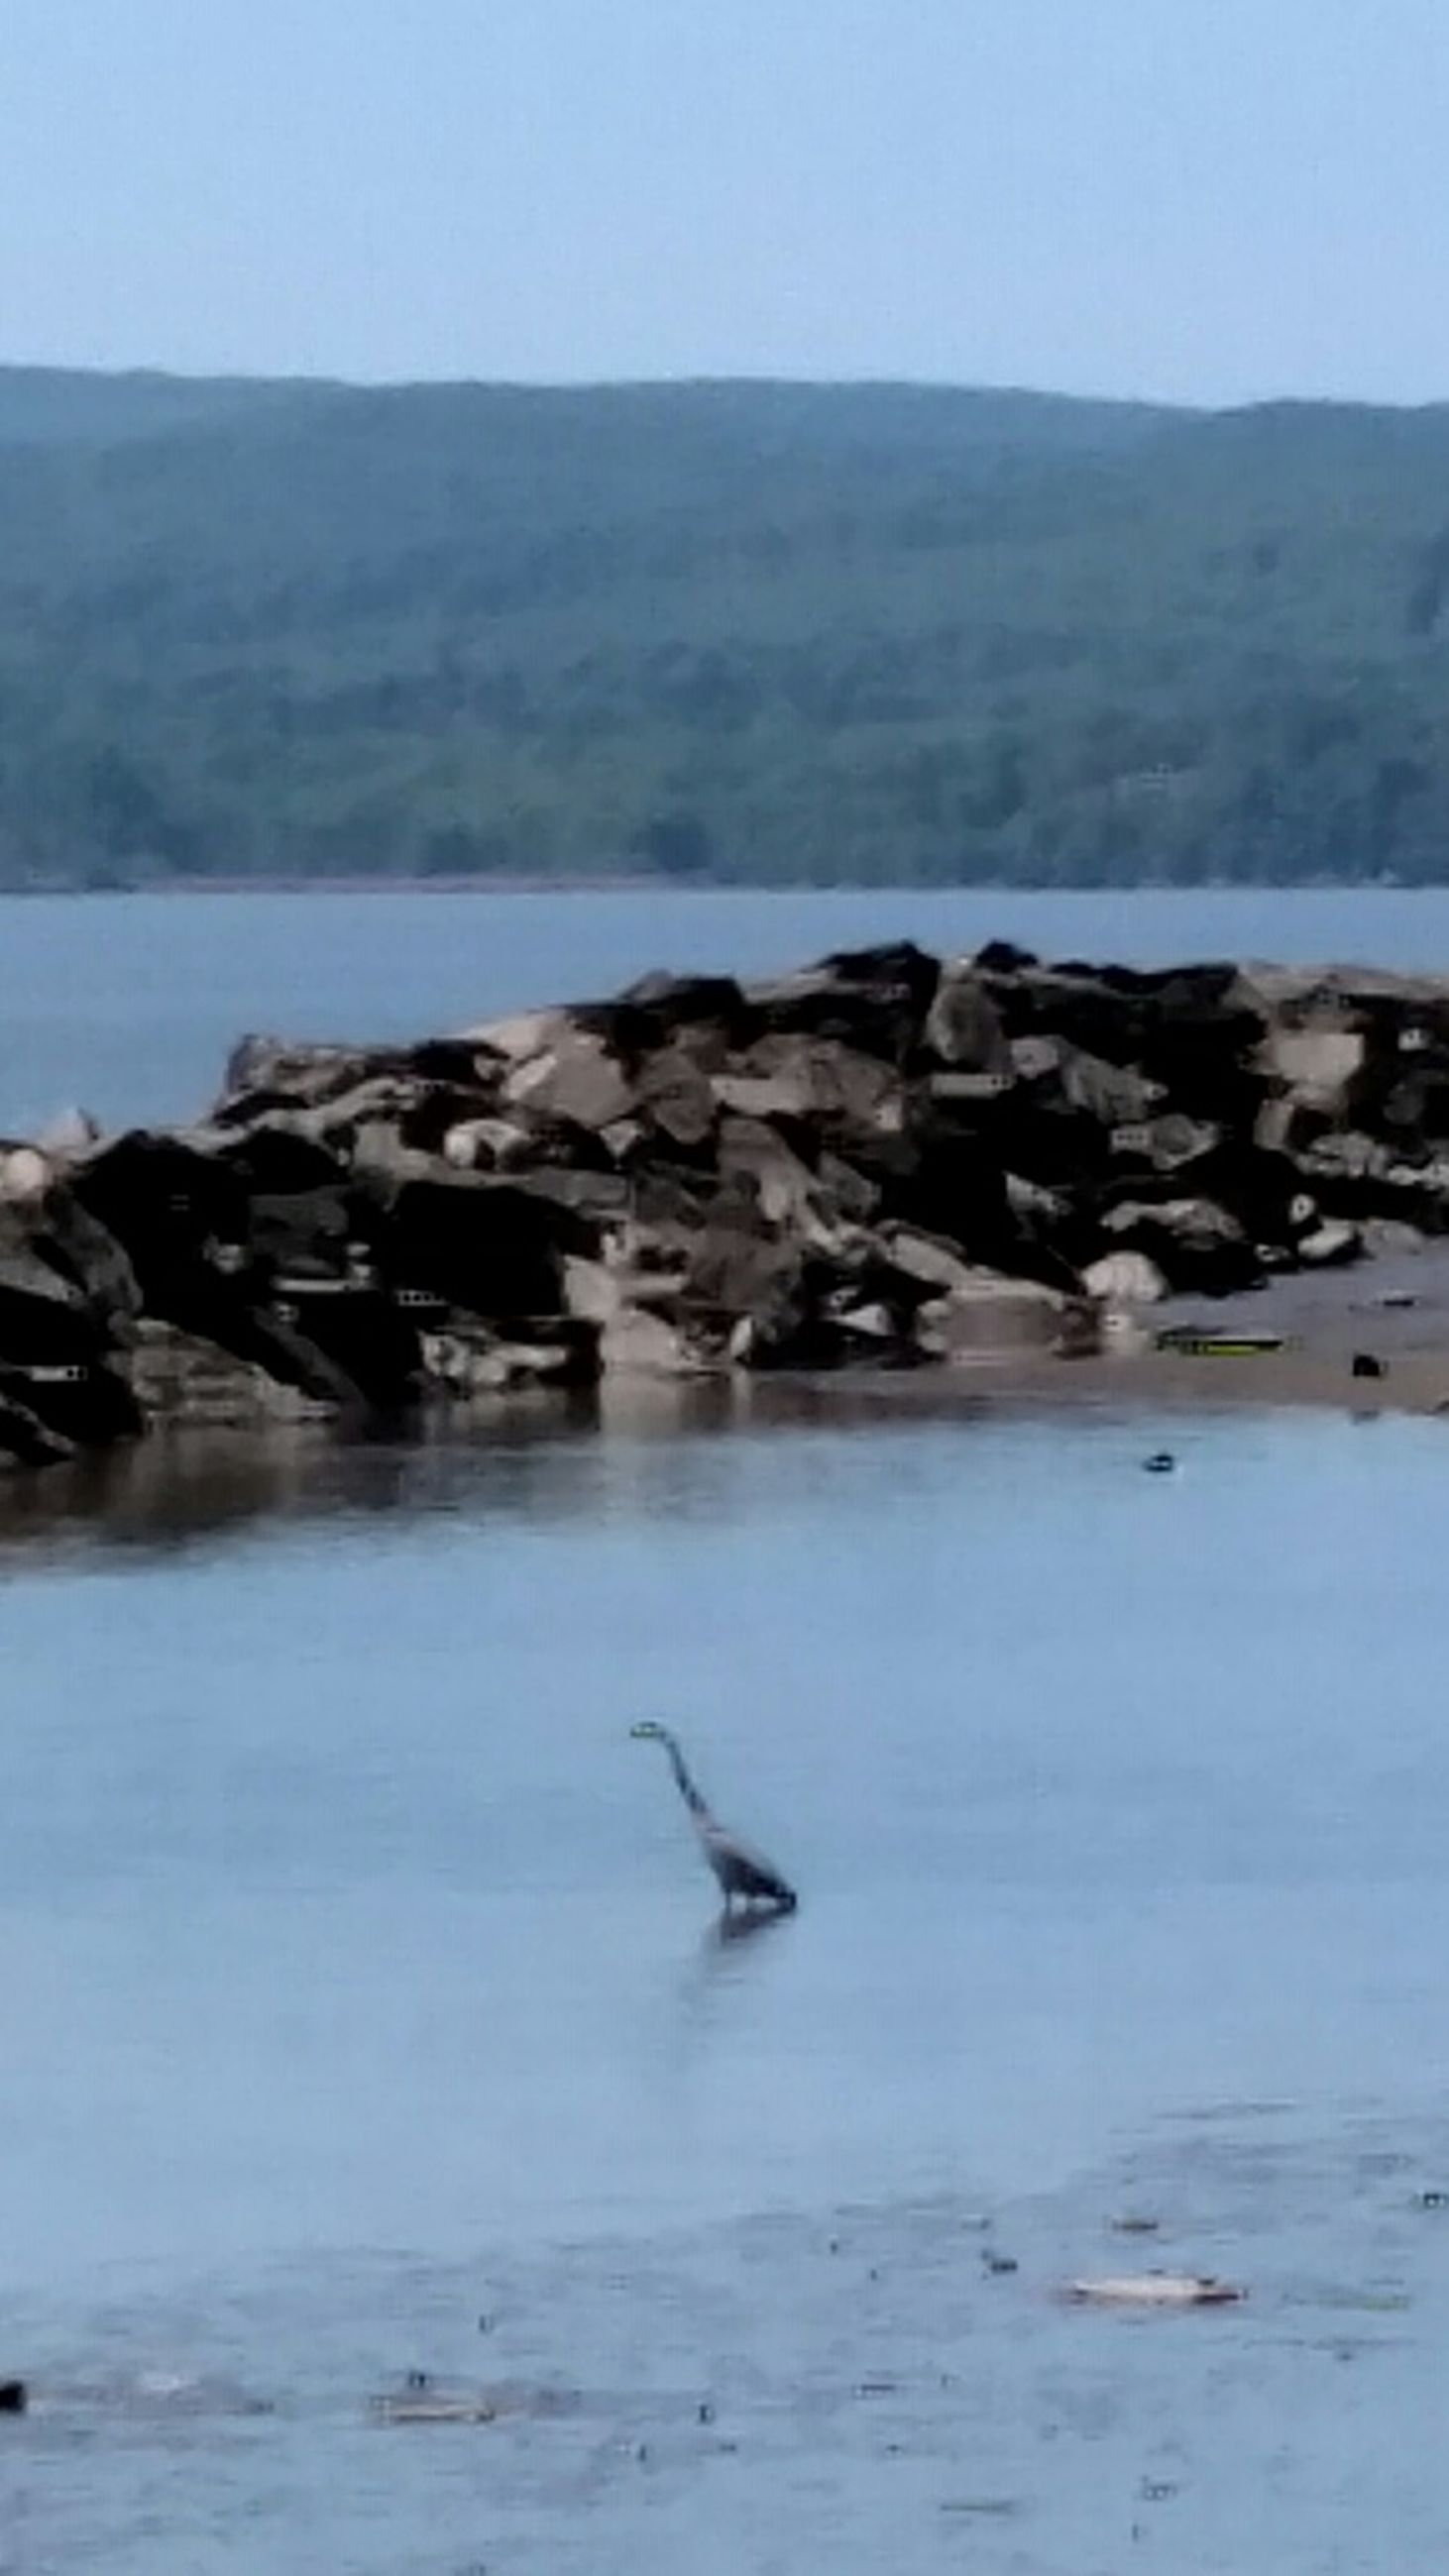 animal themes, water, bird, animals in the wild, wildlife, lake, tranquility, tranquil scene, nature, scenics, sea, beauty in nature, seagull, mountain, waterfront, one animal, rock - object, clear sky, idyllic